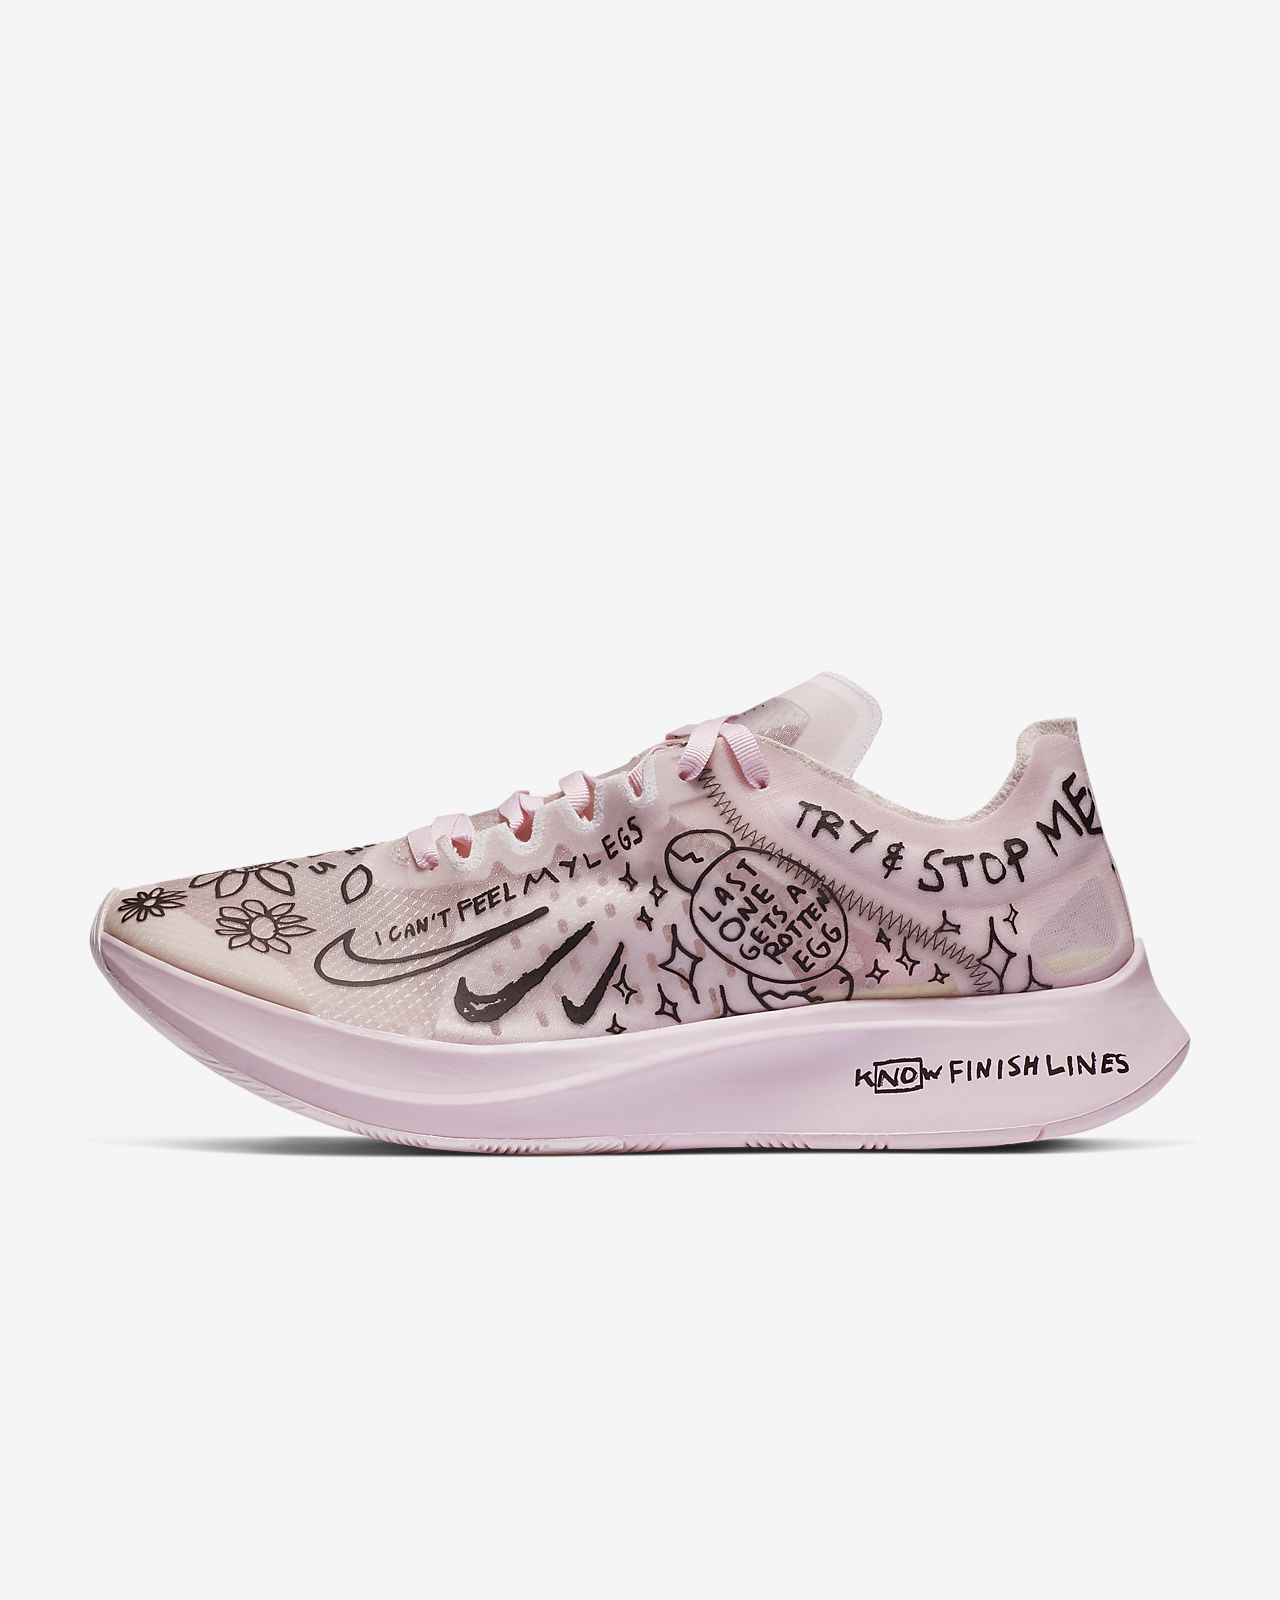 Nike Zoom Fly SP Fast Nathan Bell Zapatillas de running